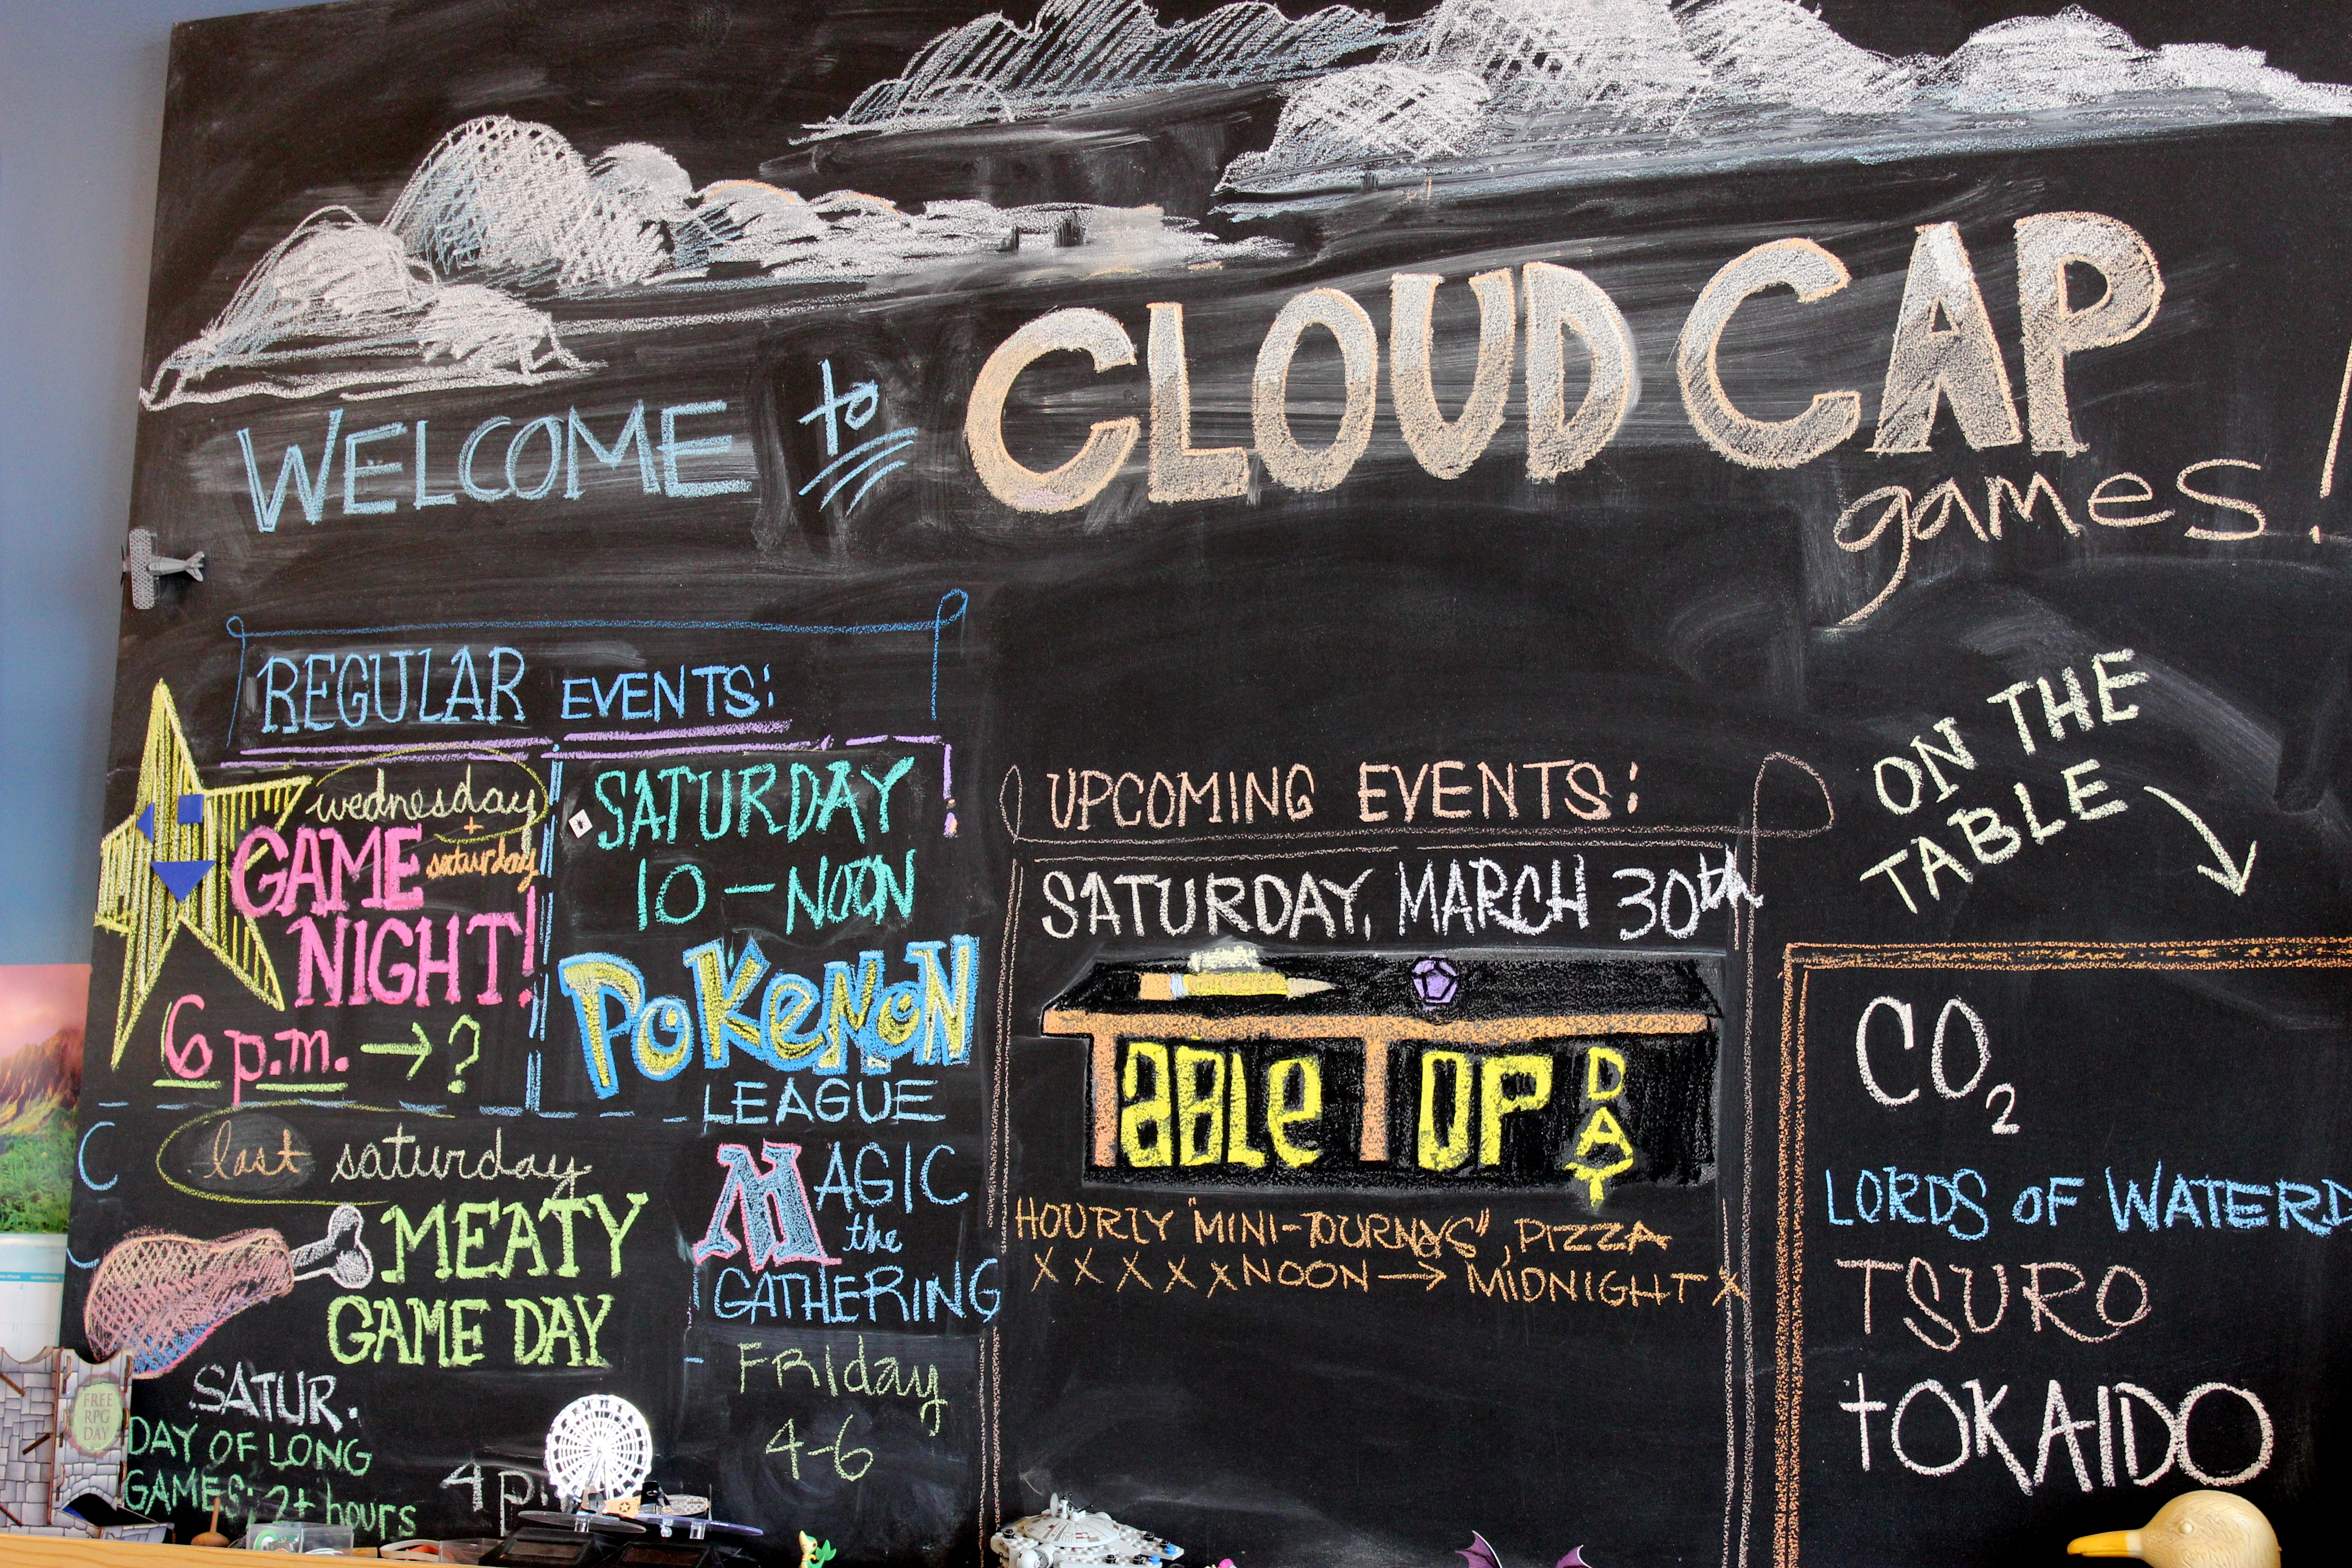 Cloud Cap Games | Kristi Does PDX: Adventures in Portland, OR